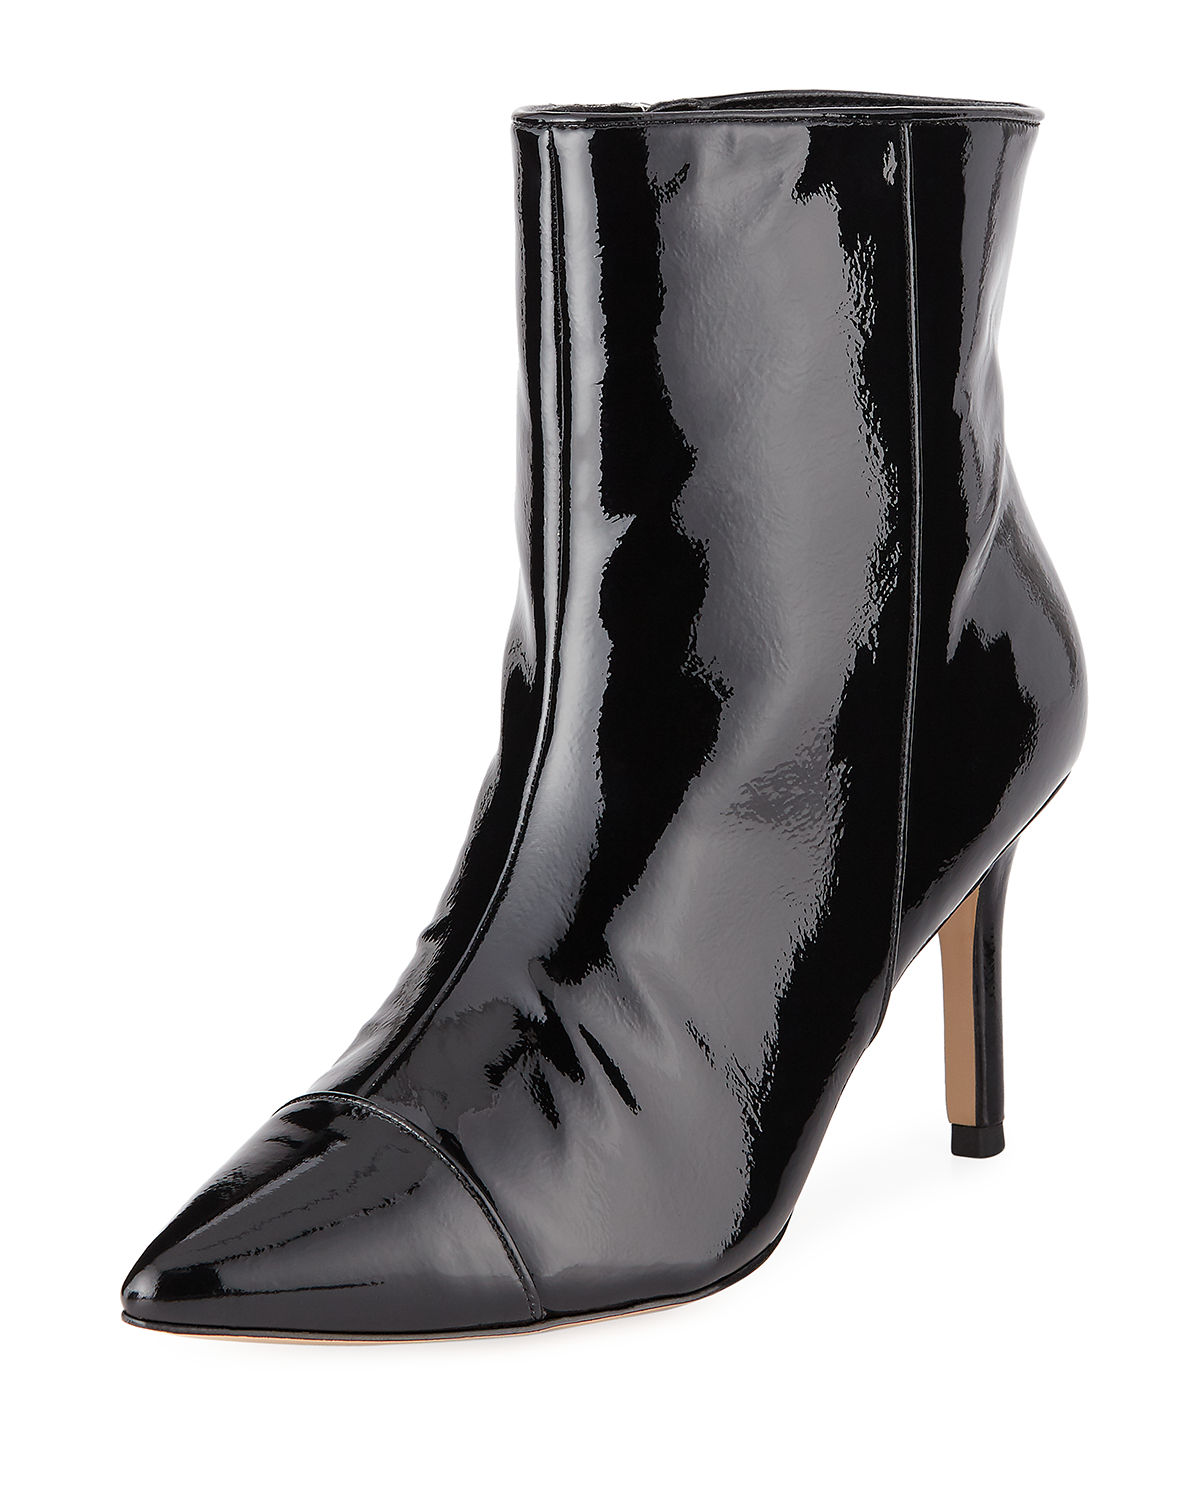 Bcbgeneration MIRIAM PATENT FAUX-LEATHER BOOTS